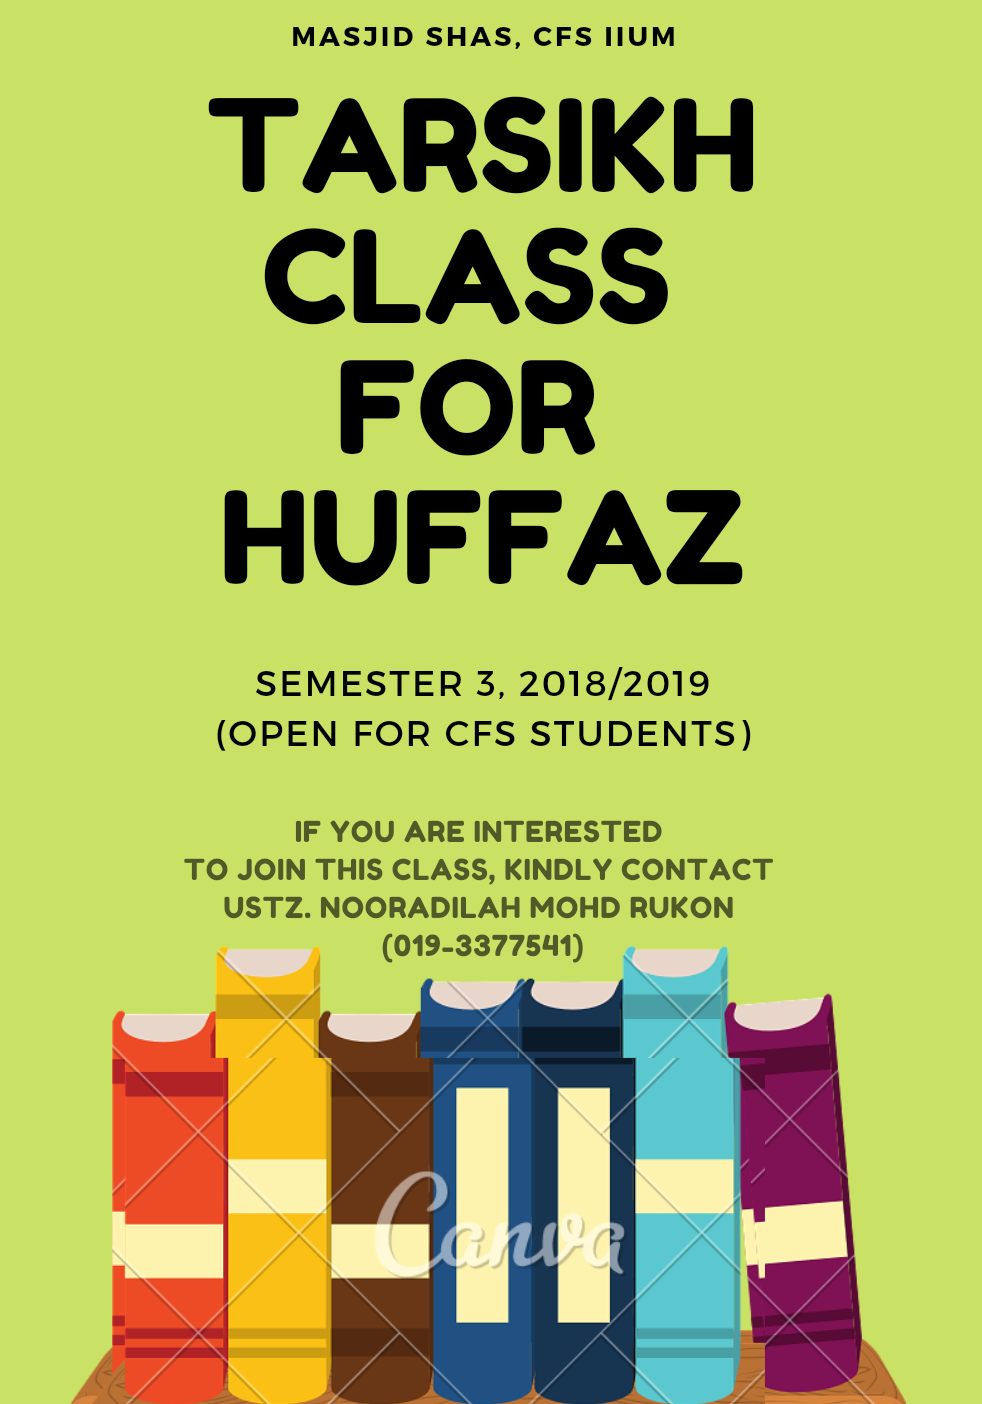 TARSIKH CLASS FOR CFS STUDENTS SEMESTER 3, 2018/2019